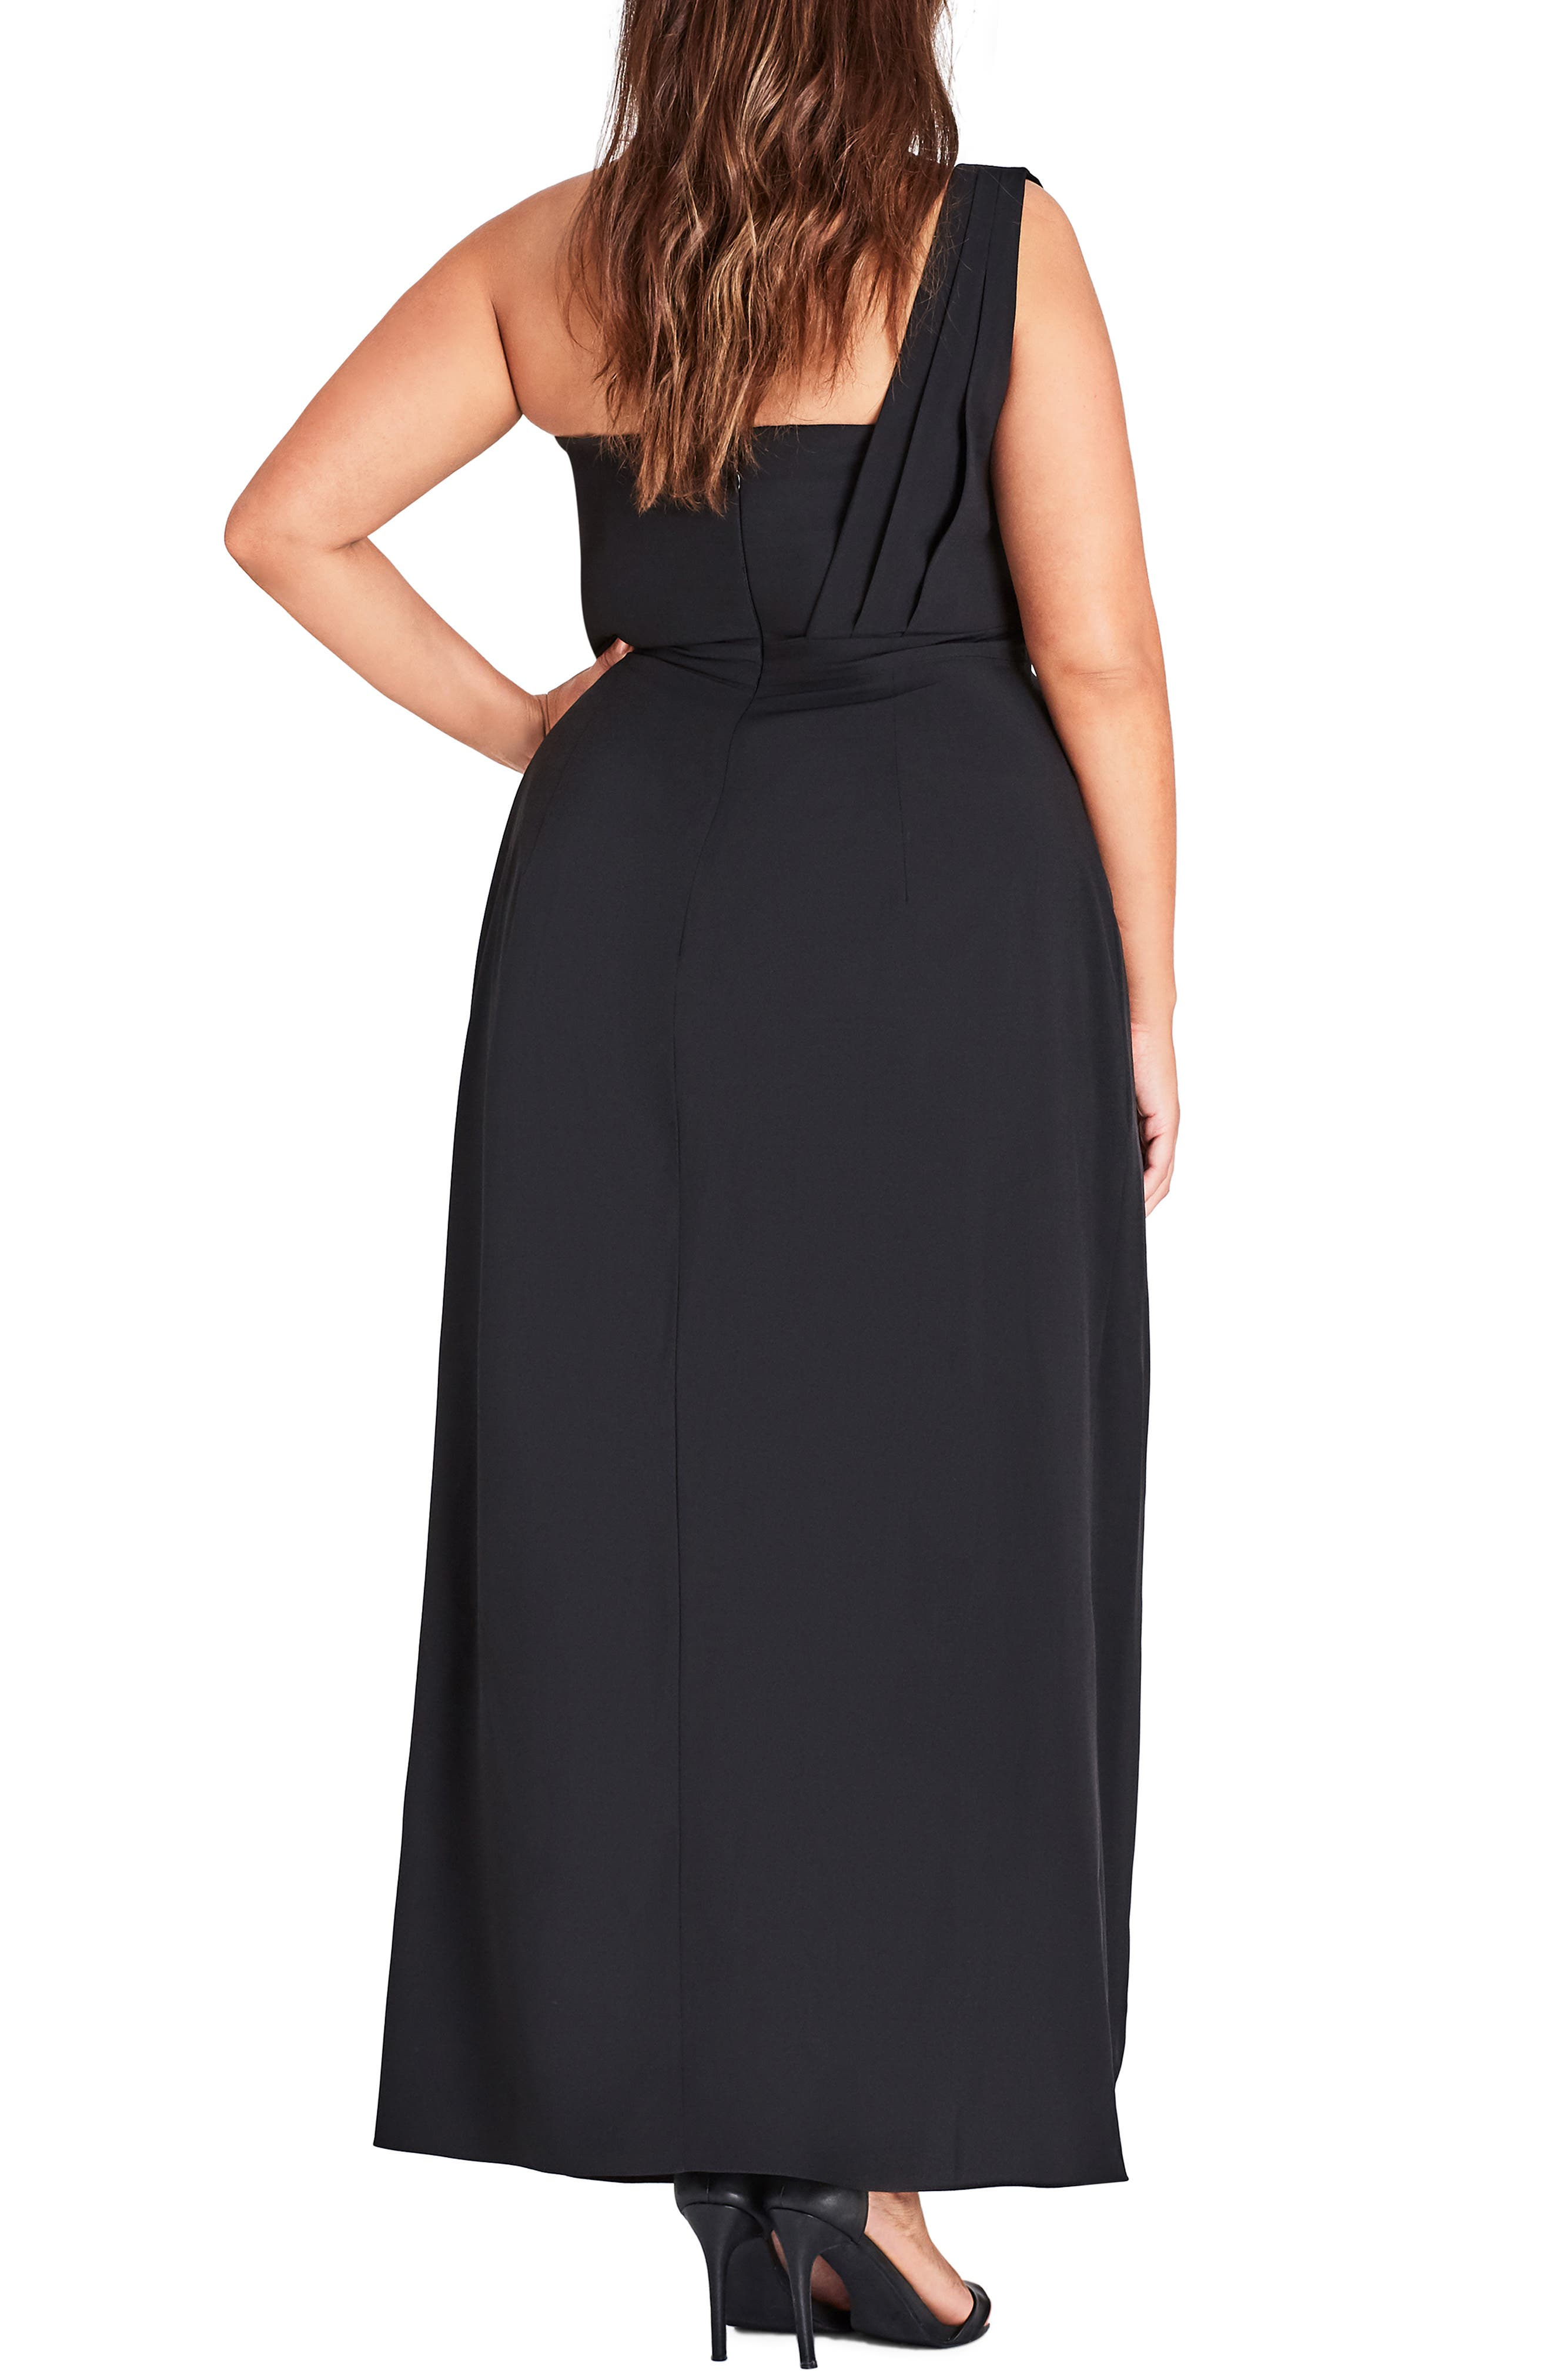 Allure One-Shoulder Maxi Dress,                             Alternate thumbnail 2, color,                             BLACK